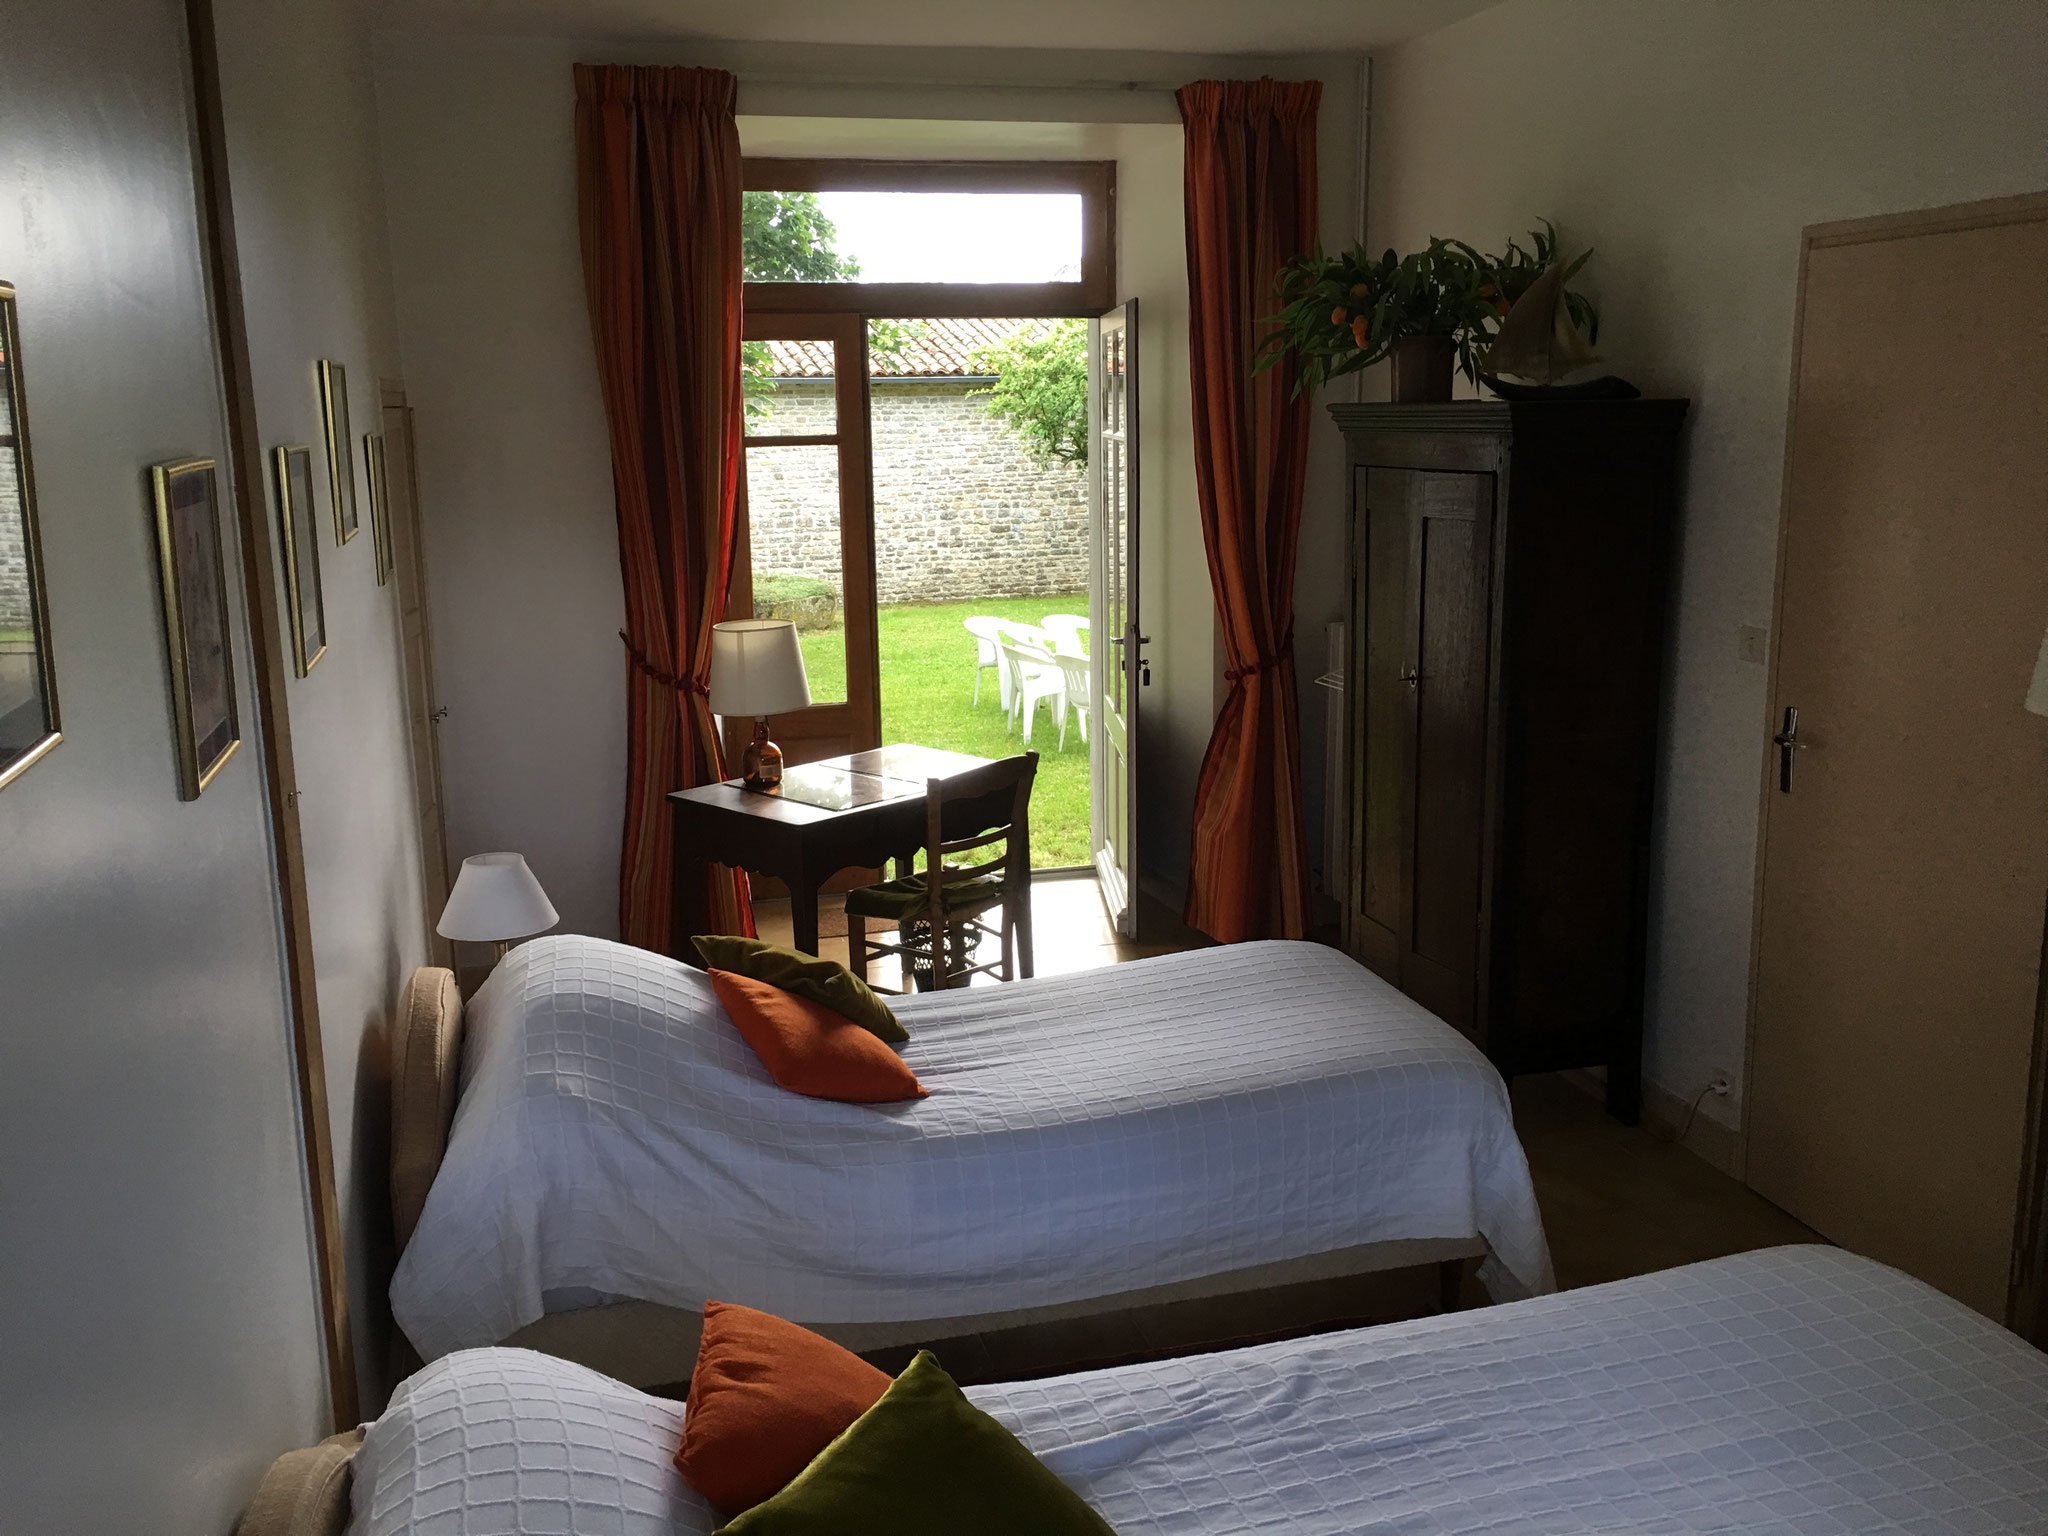 Room with 2 beds on the ground floor, towards the garden